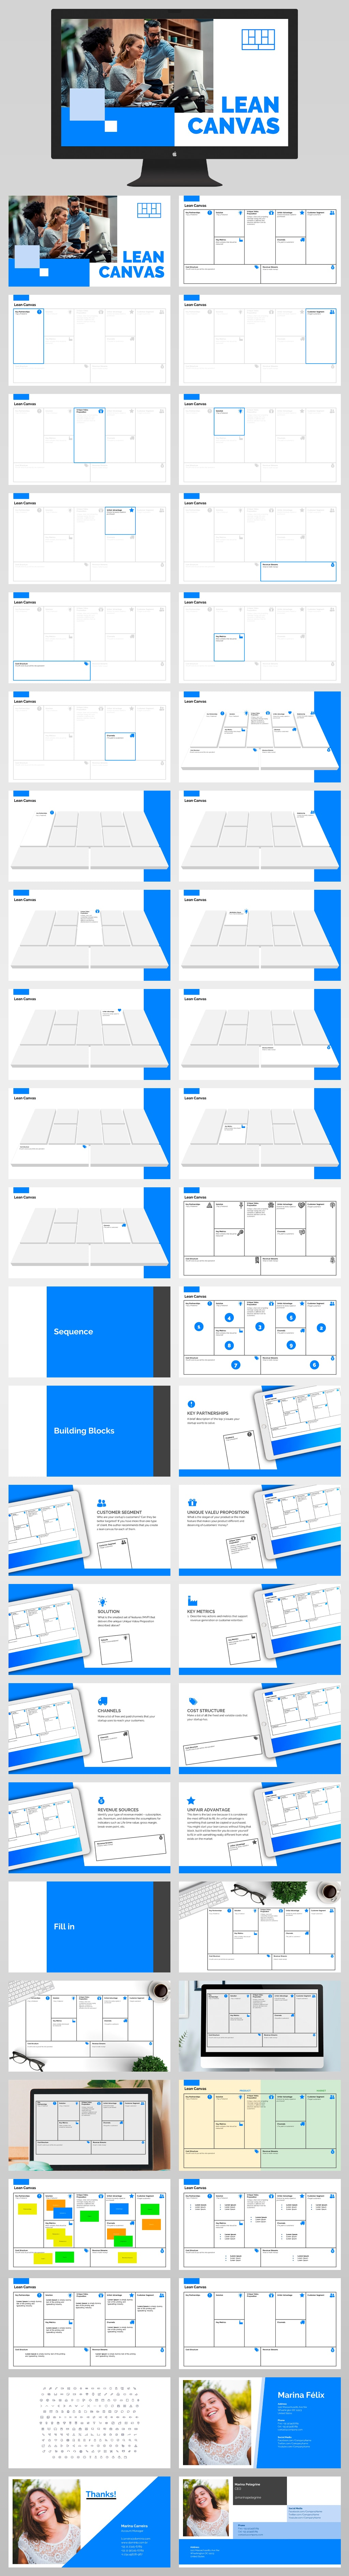 Lean Canvas Presentation Template Powerpoint All Slides Light